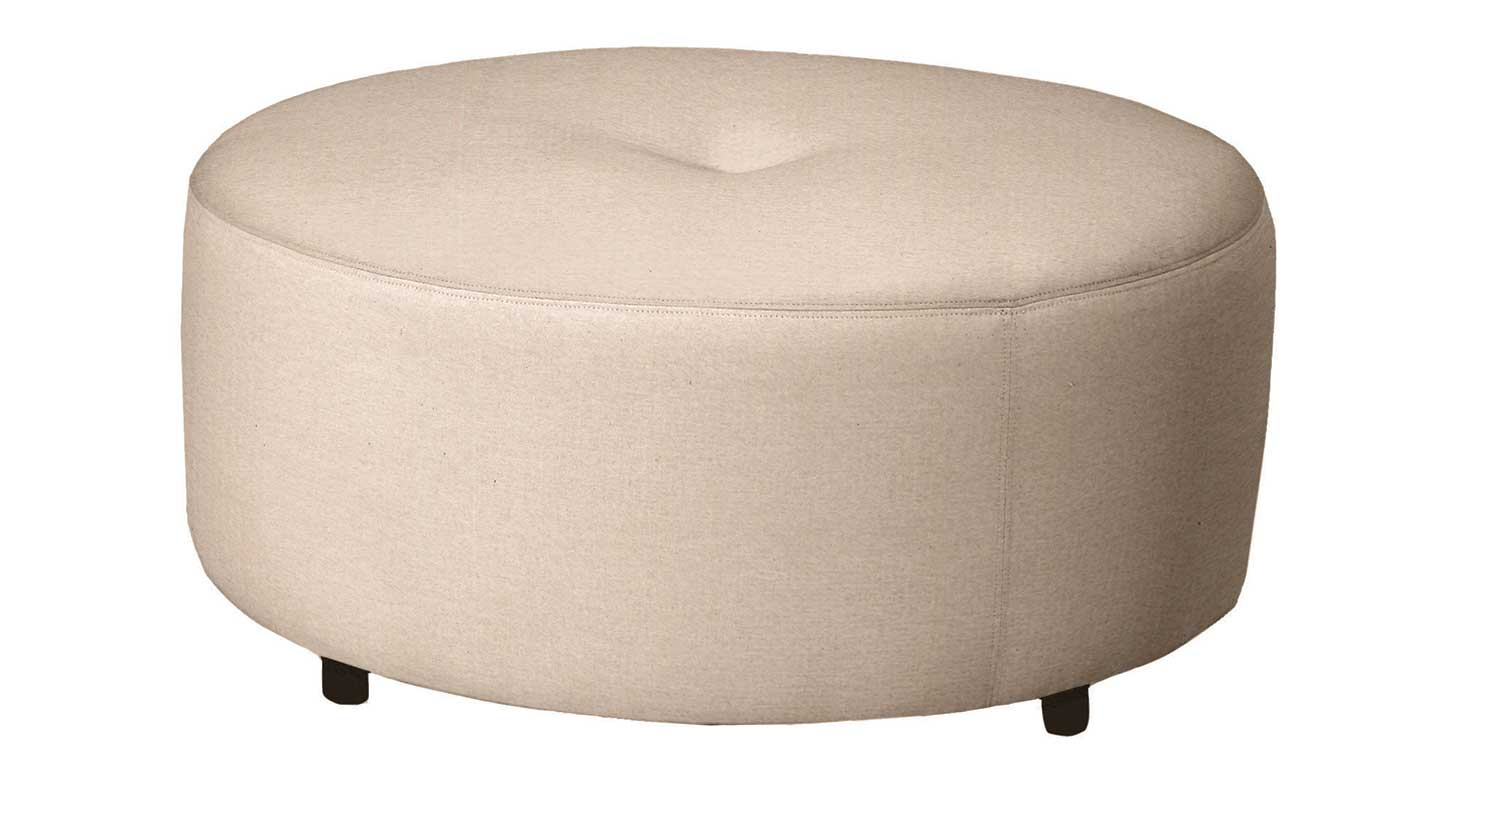 Circle Furniture - Pouf Ottoman  Ottomans Boston  Circle Furniture